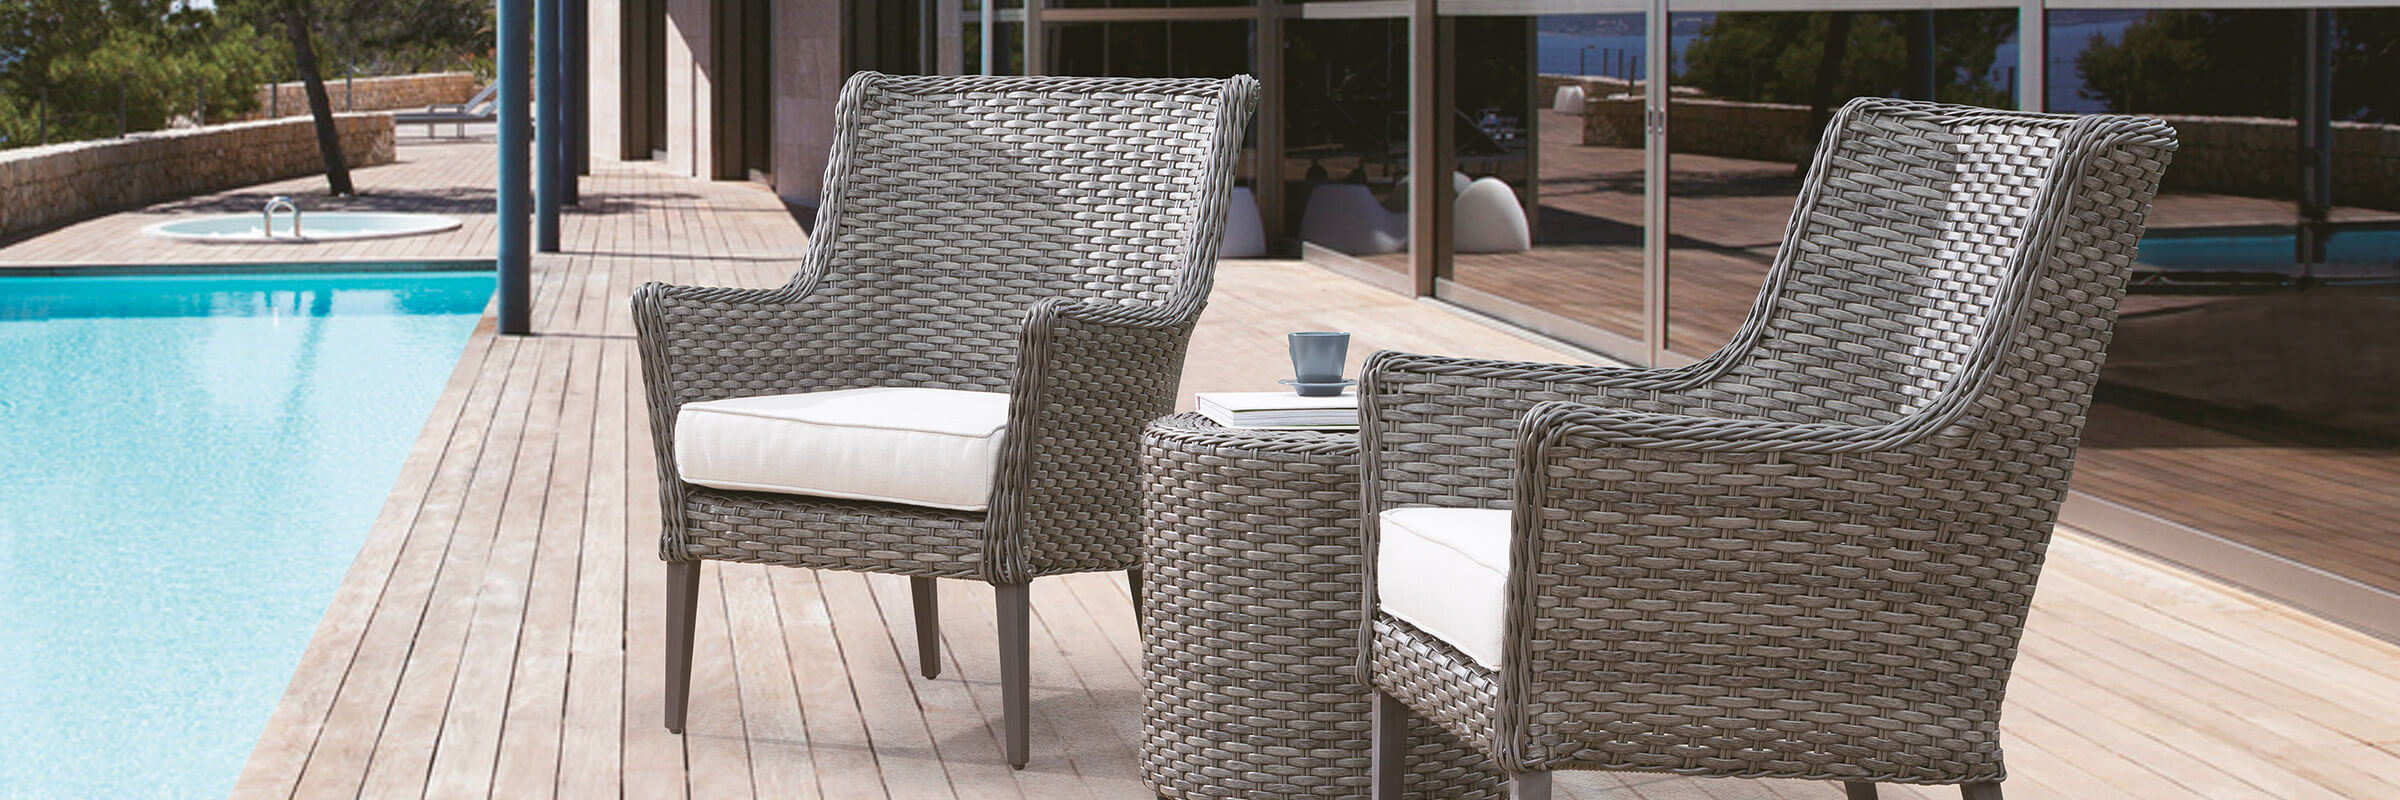 Erwin & Sons Outdoor Furniture